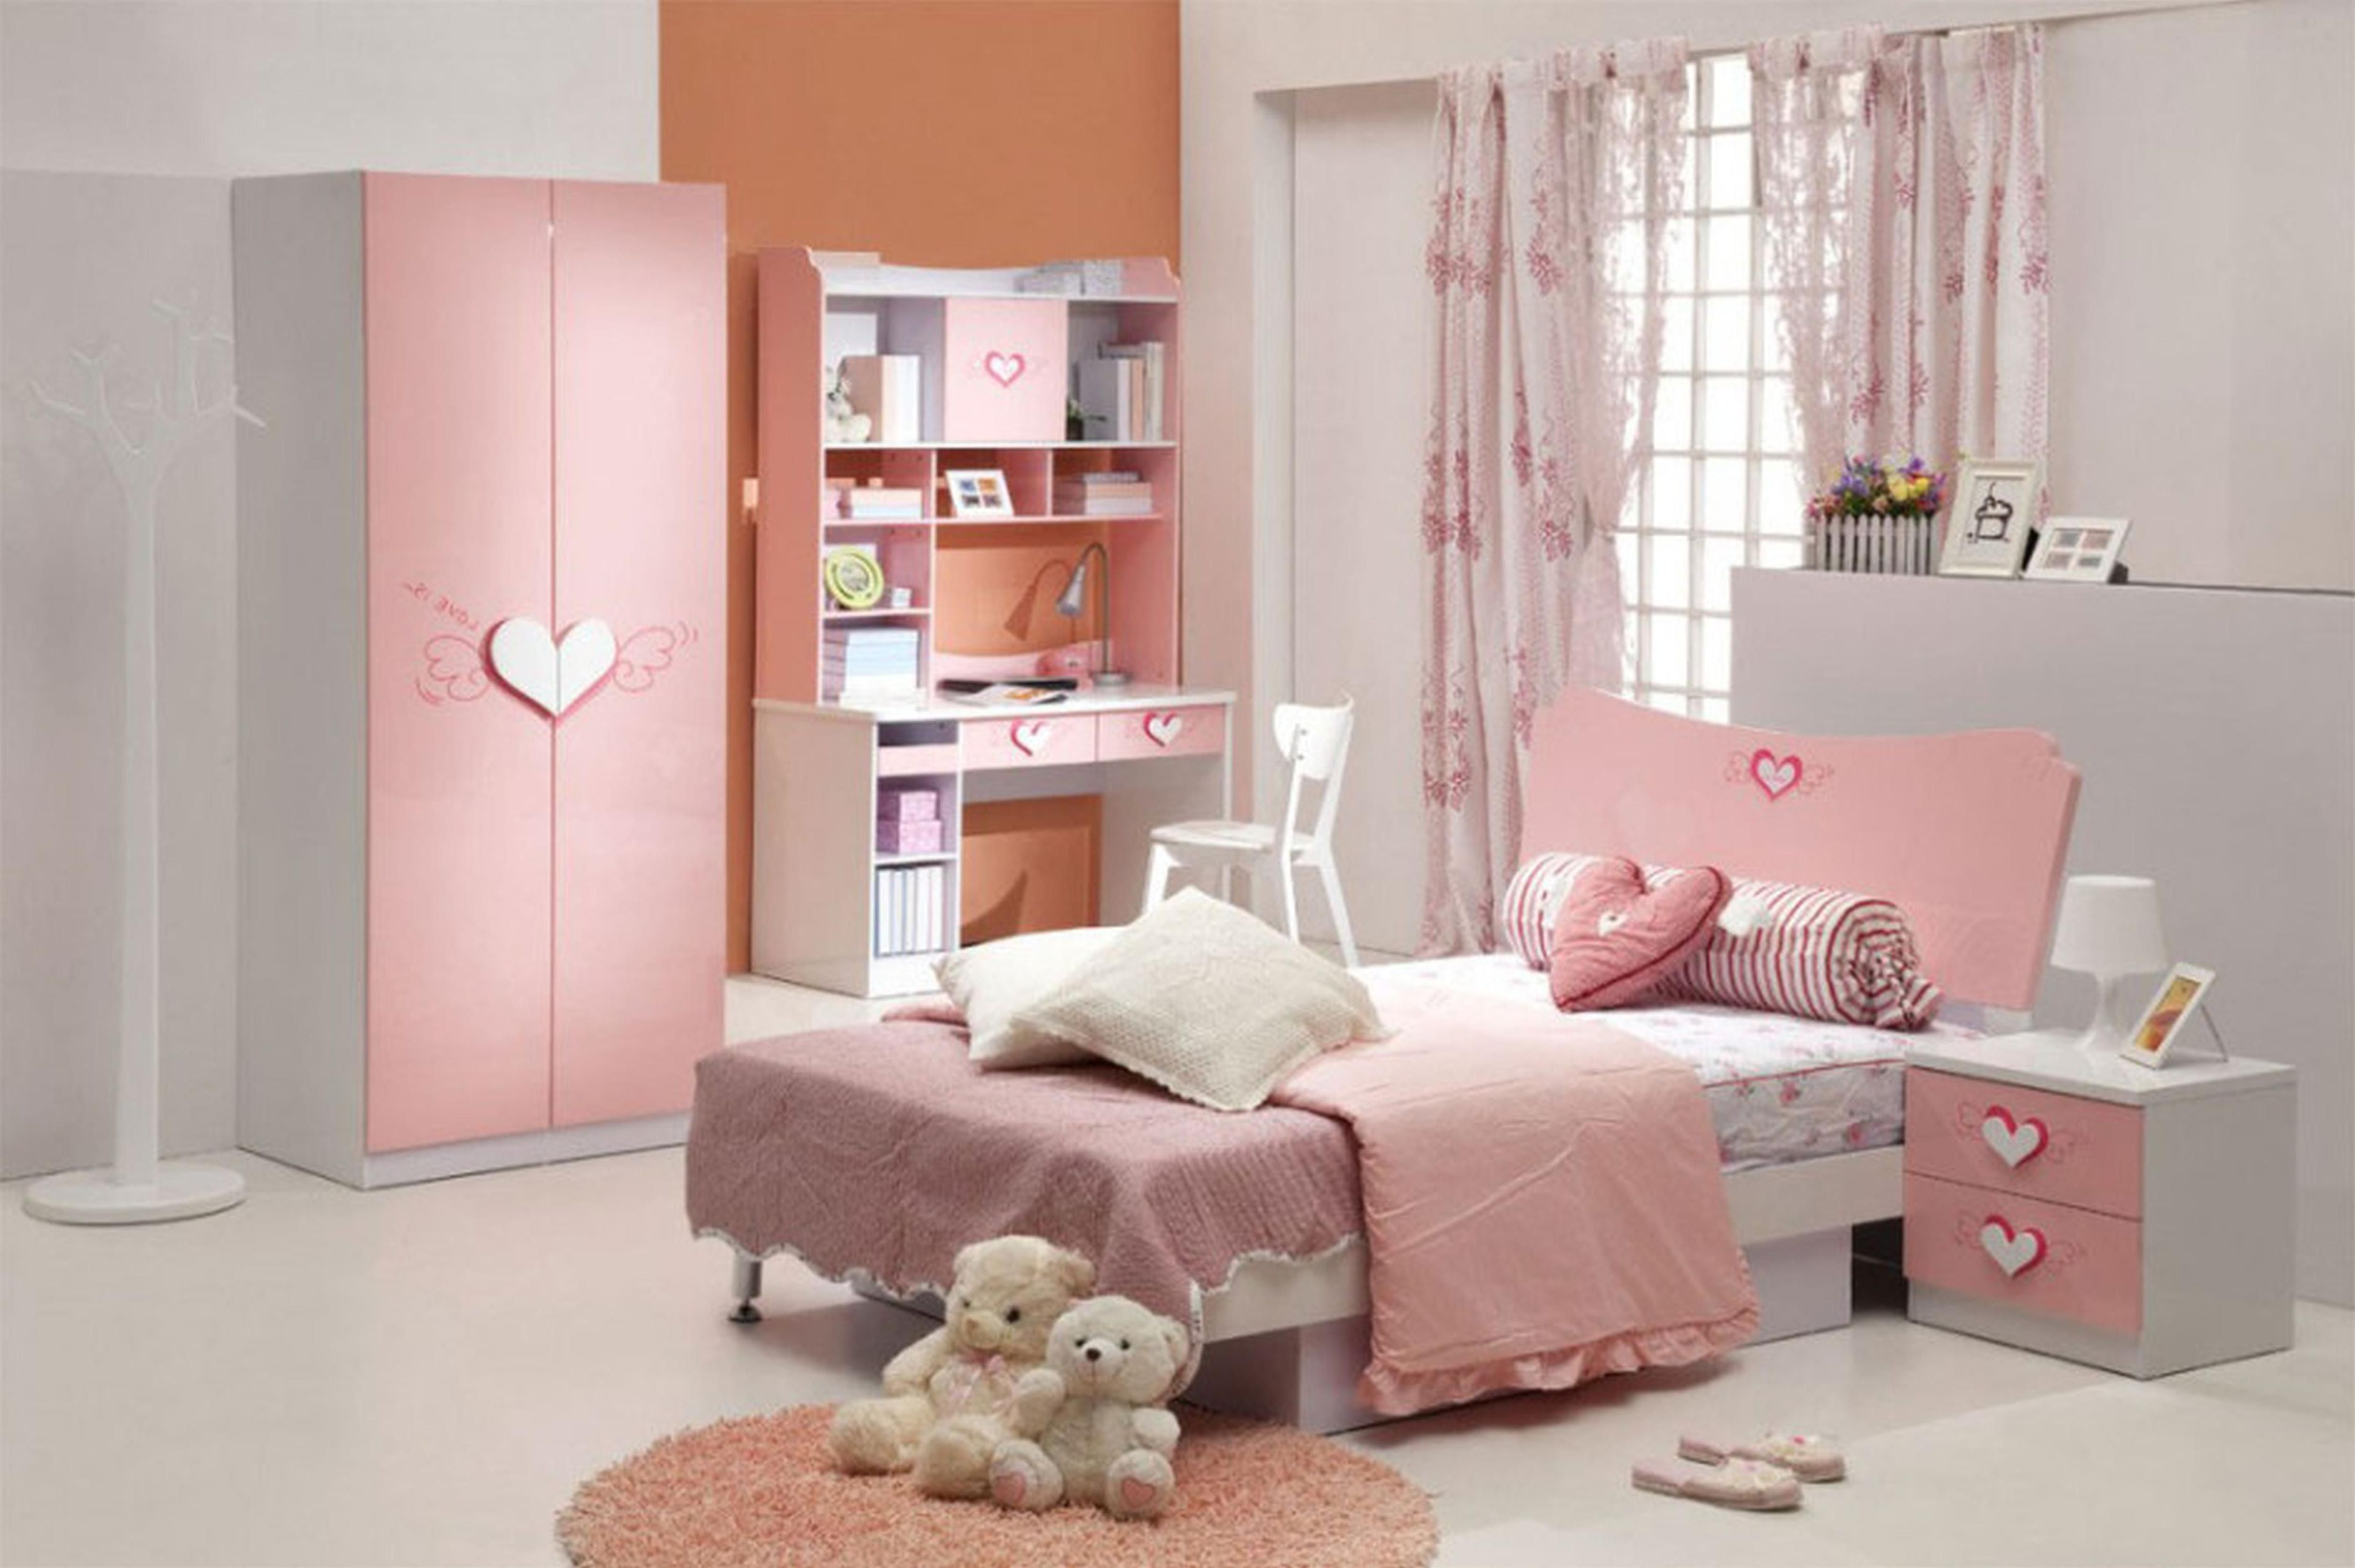 bed springs decorations Google Search